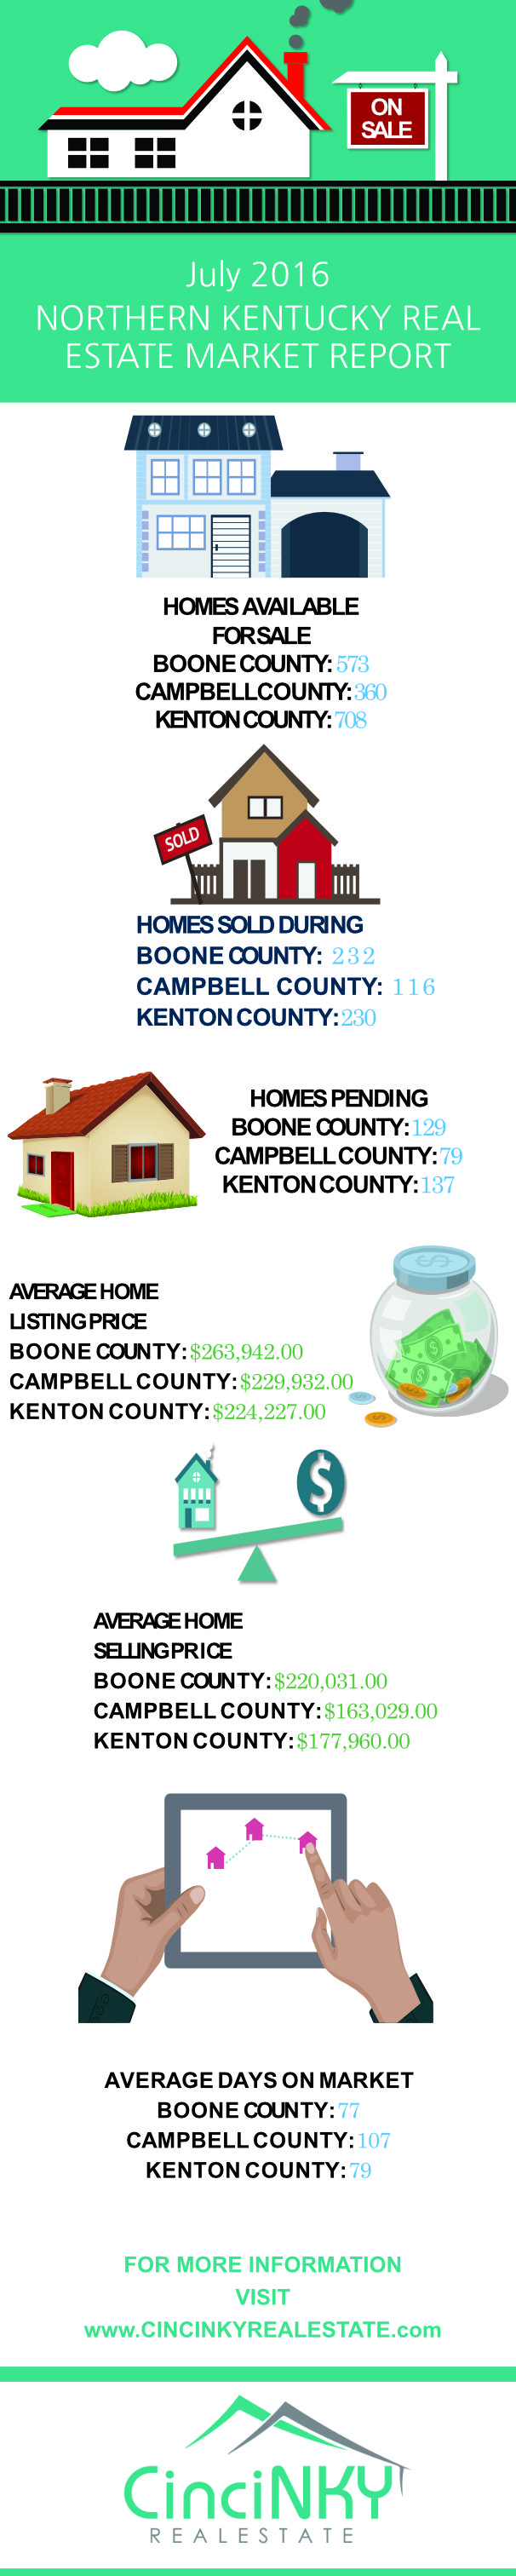 northern kentucky july 2016 real estate market report infographic